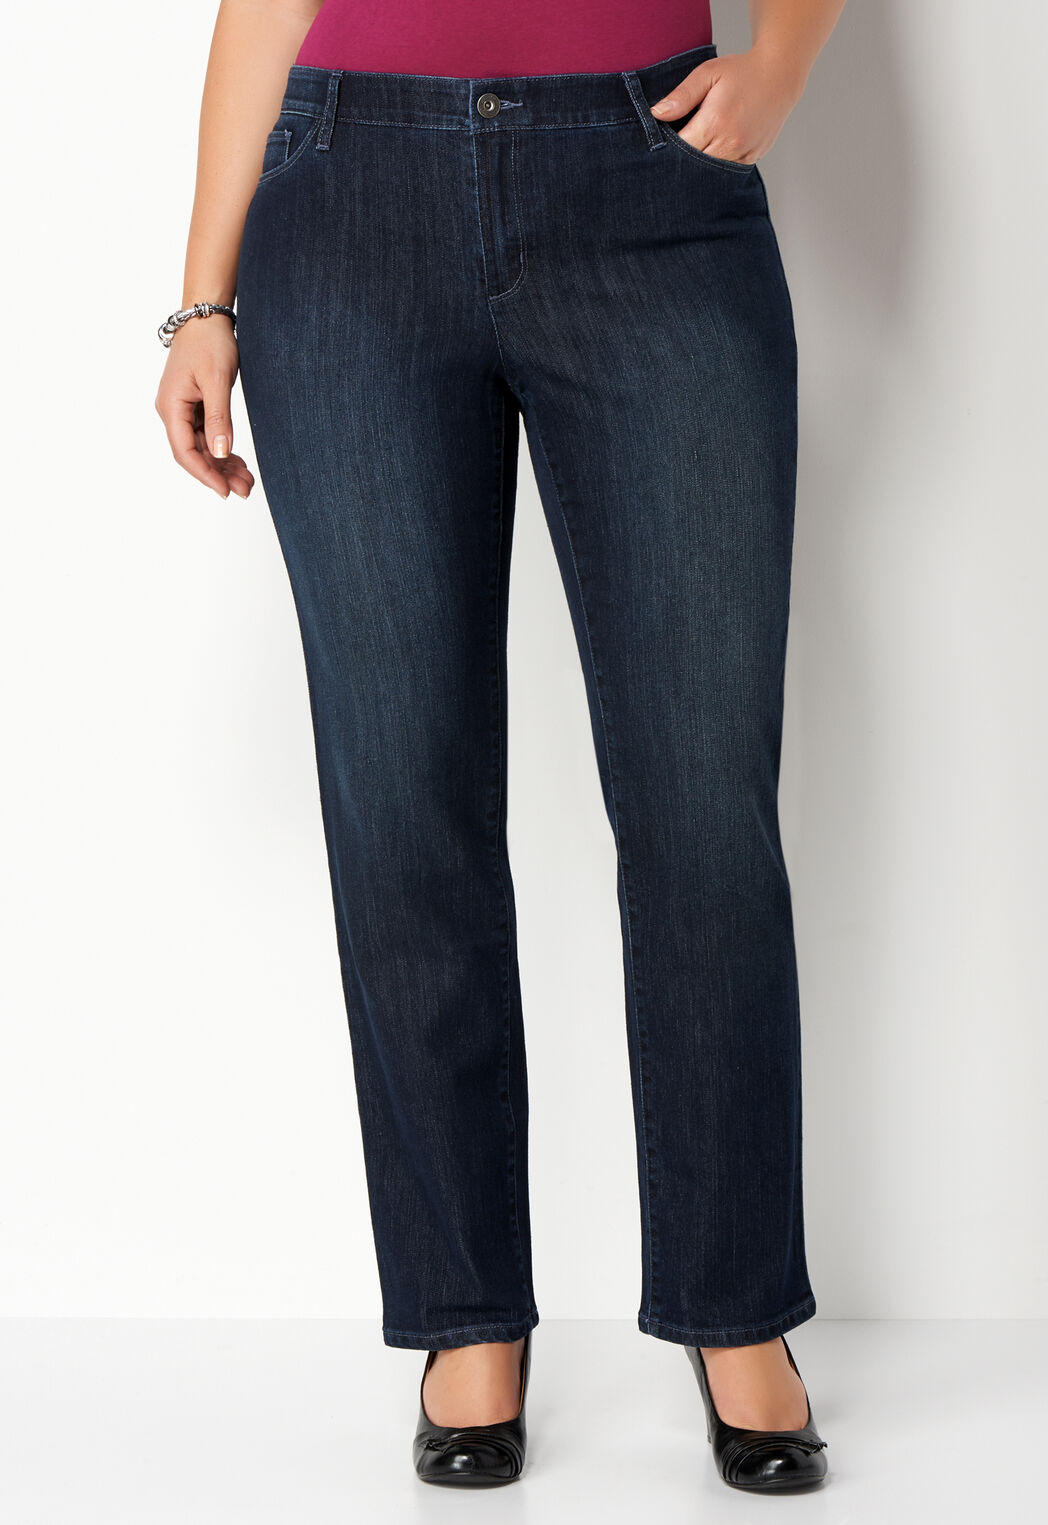 women's plus sized everyday denim plus size pant tall from